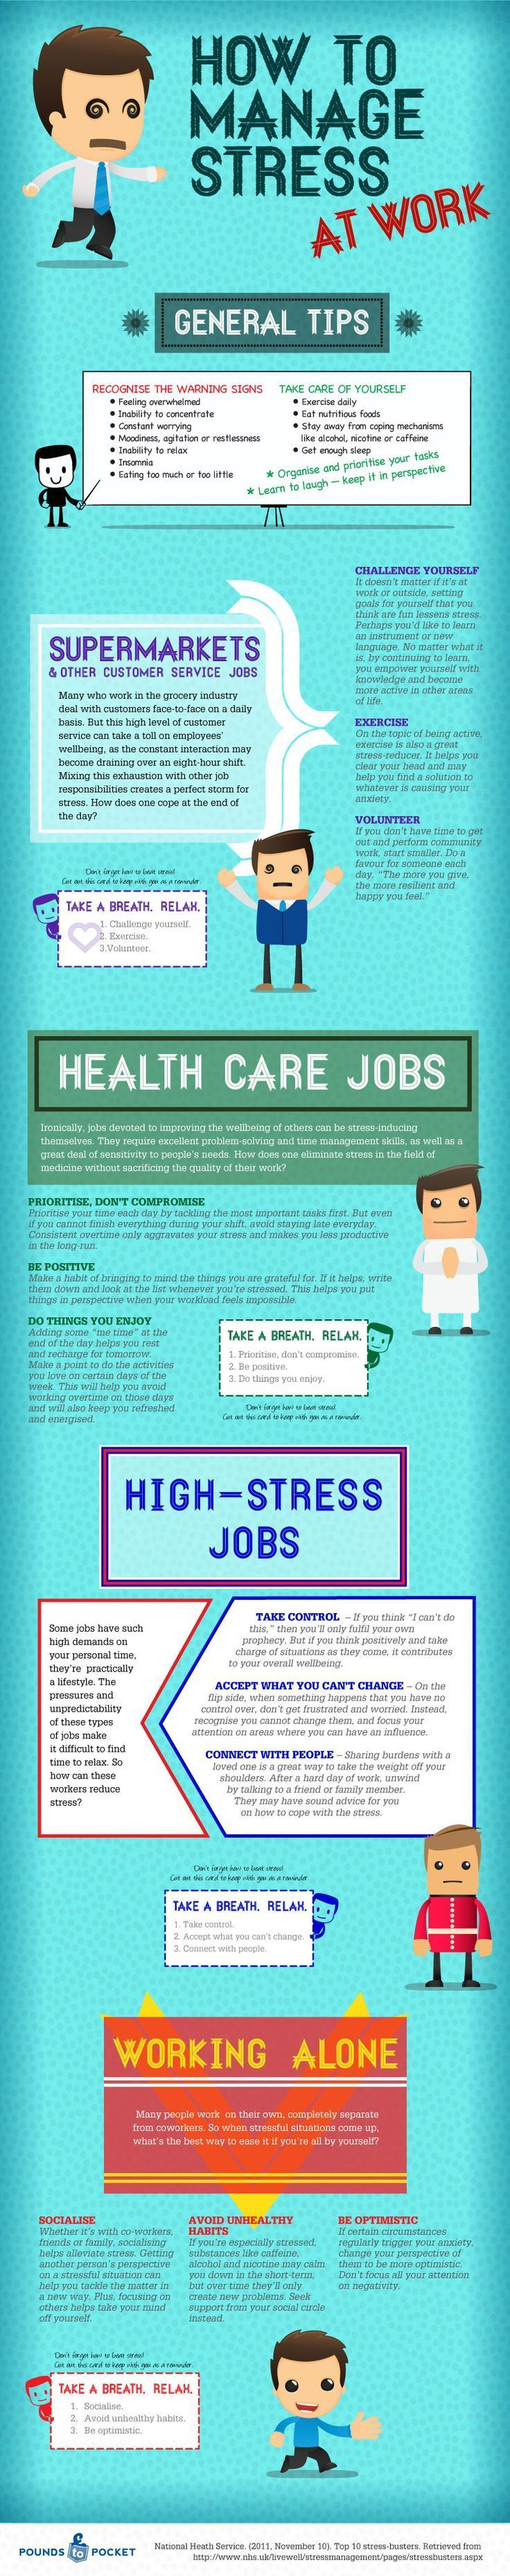 best ideas about managing stress at work work how to get rid of stress tension and anxiety most effective ways